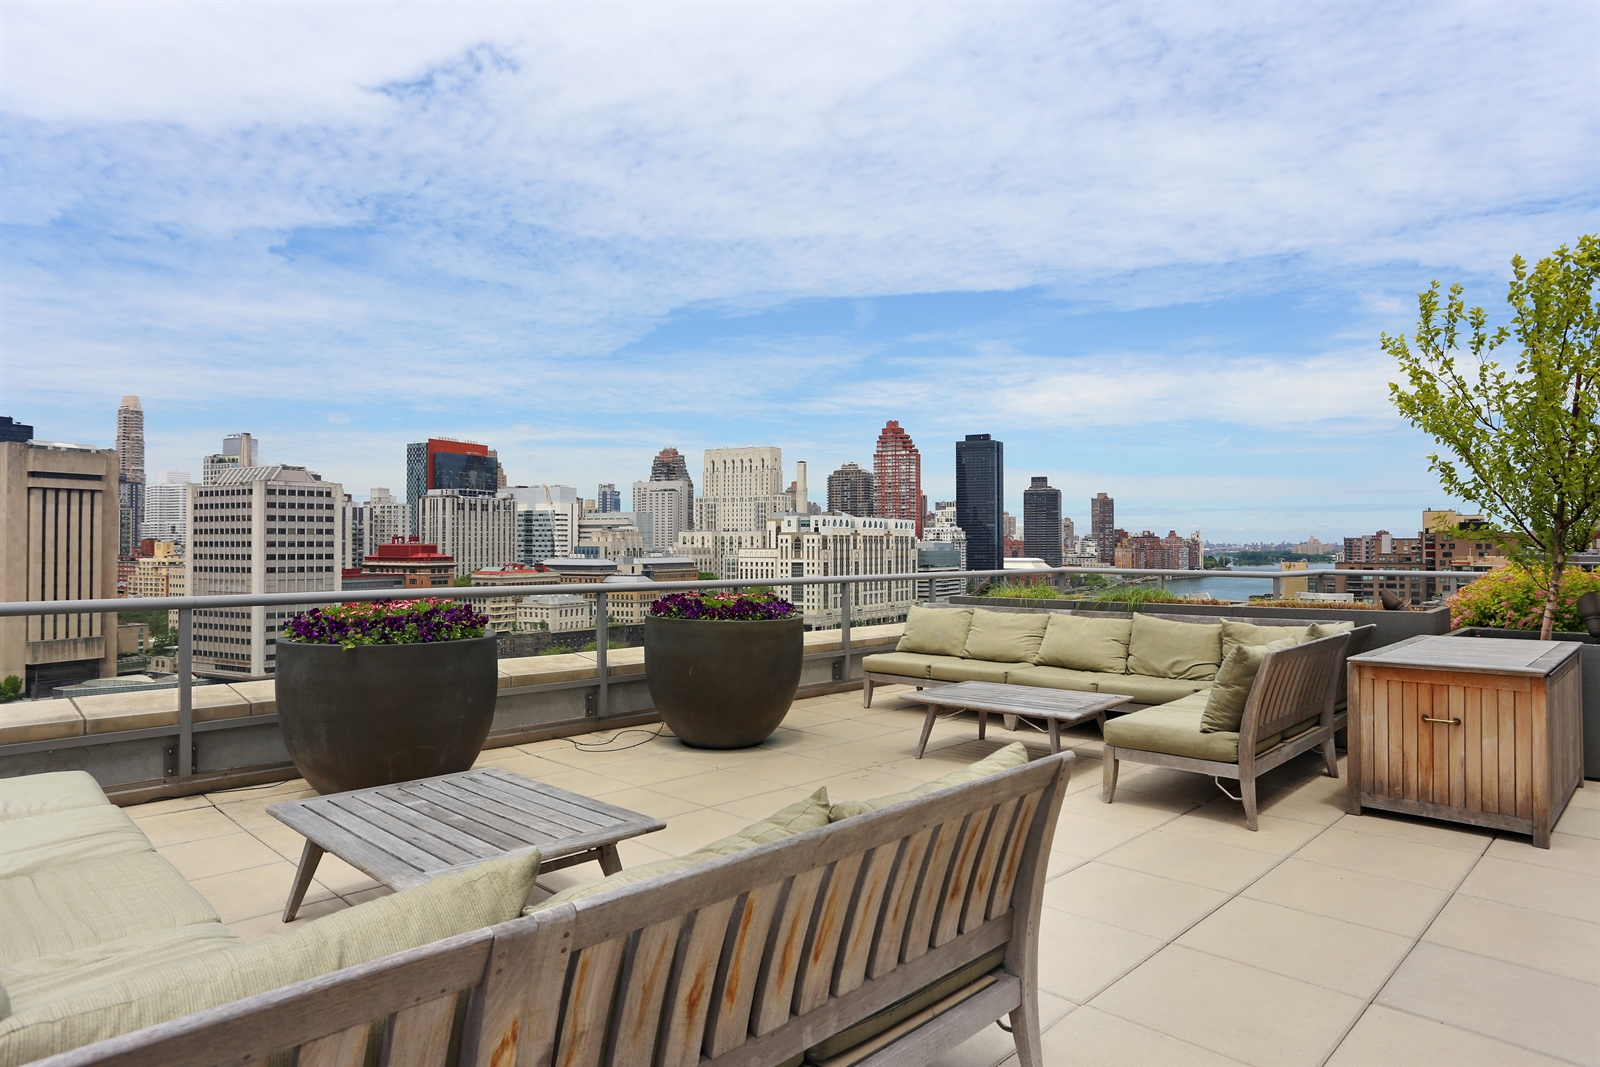 415 MAIN ST, 10A, View